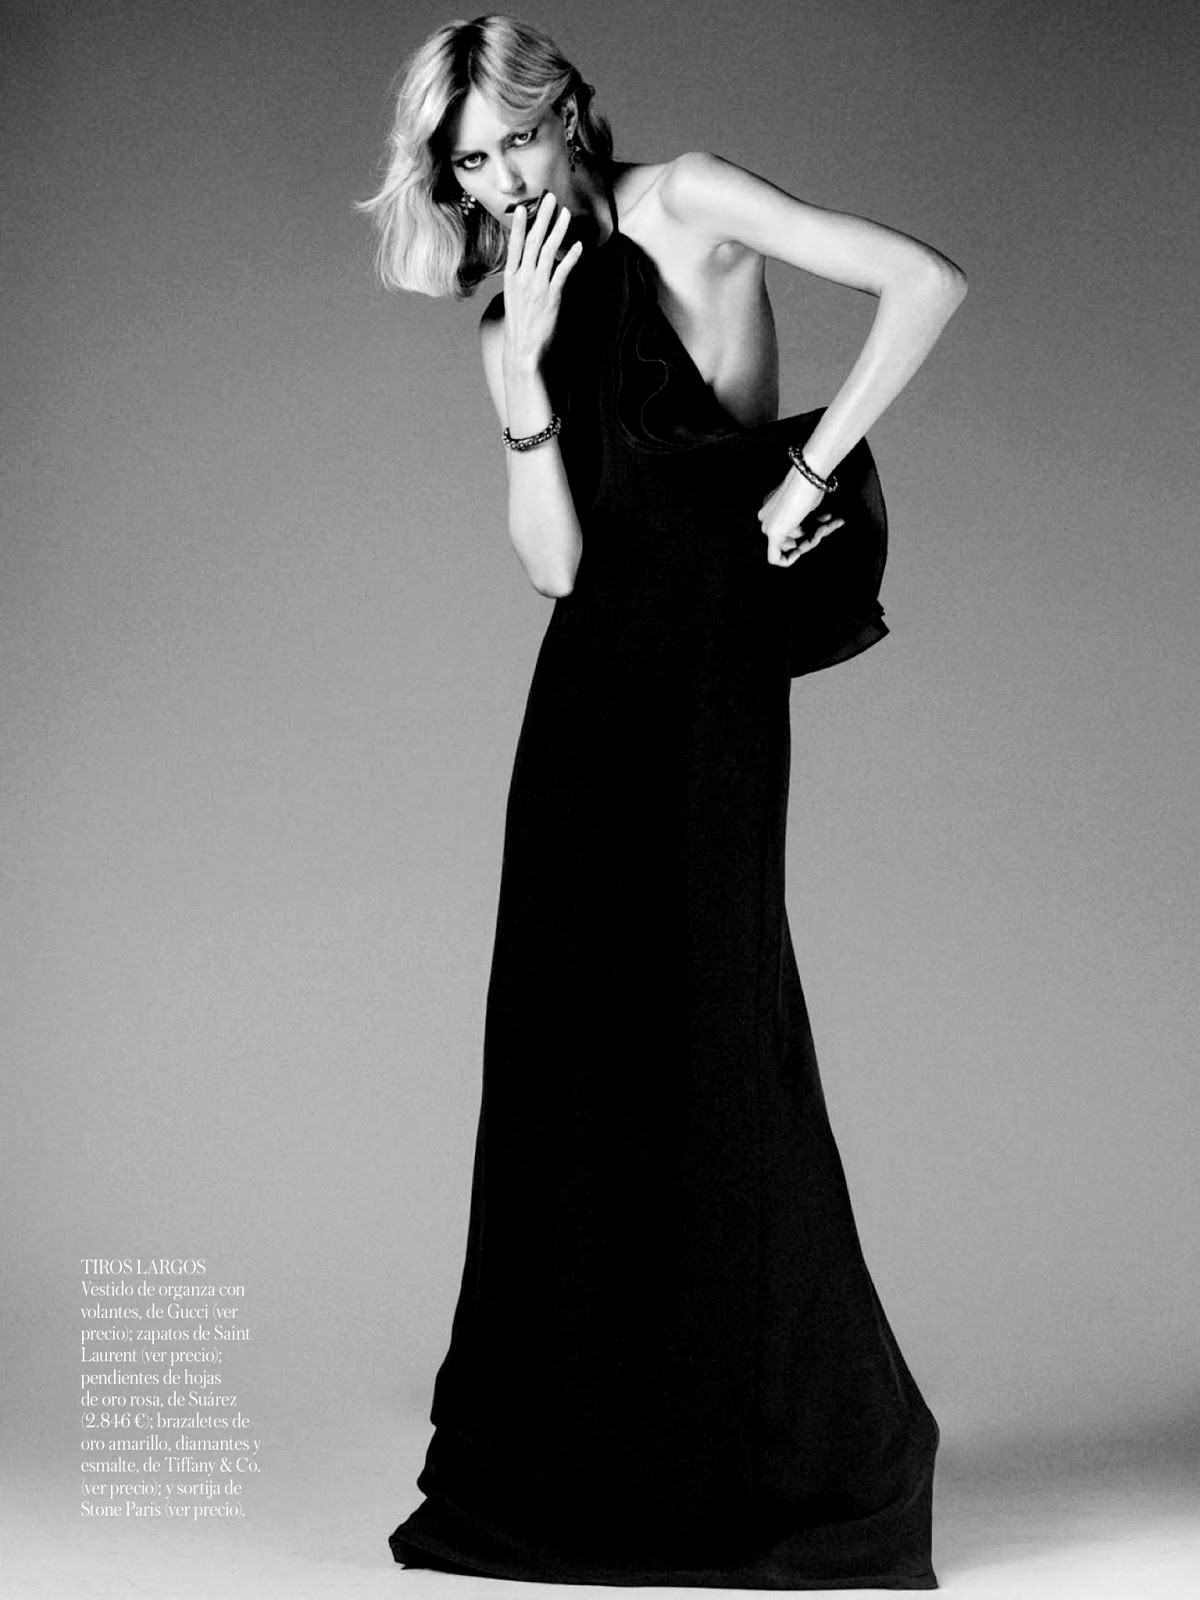 fashion_scans_remastered-anja_rubik-vogue_espana-june_2013-scanned_by_vampirehorde-hq-4.jpg